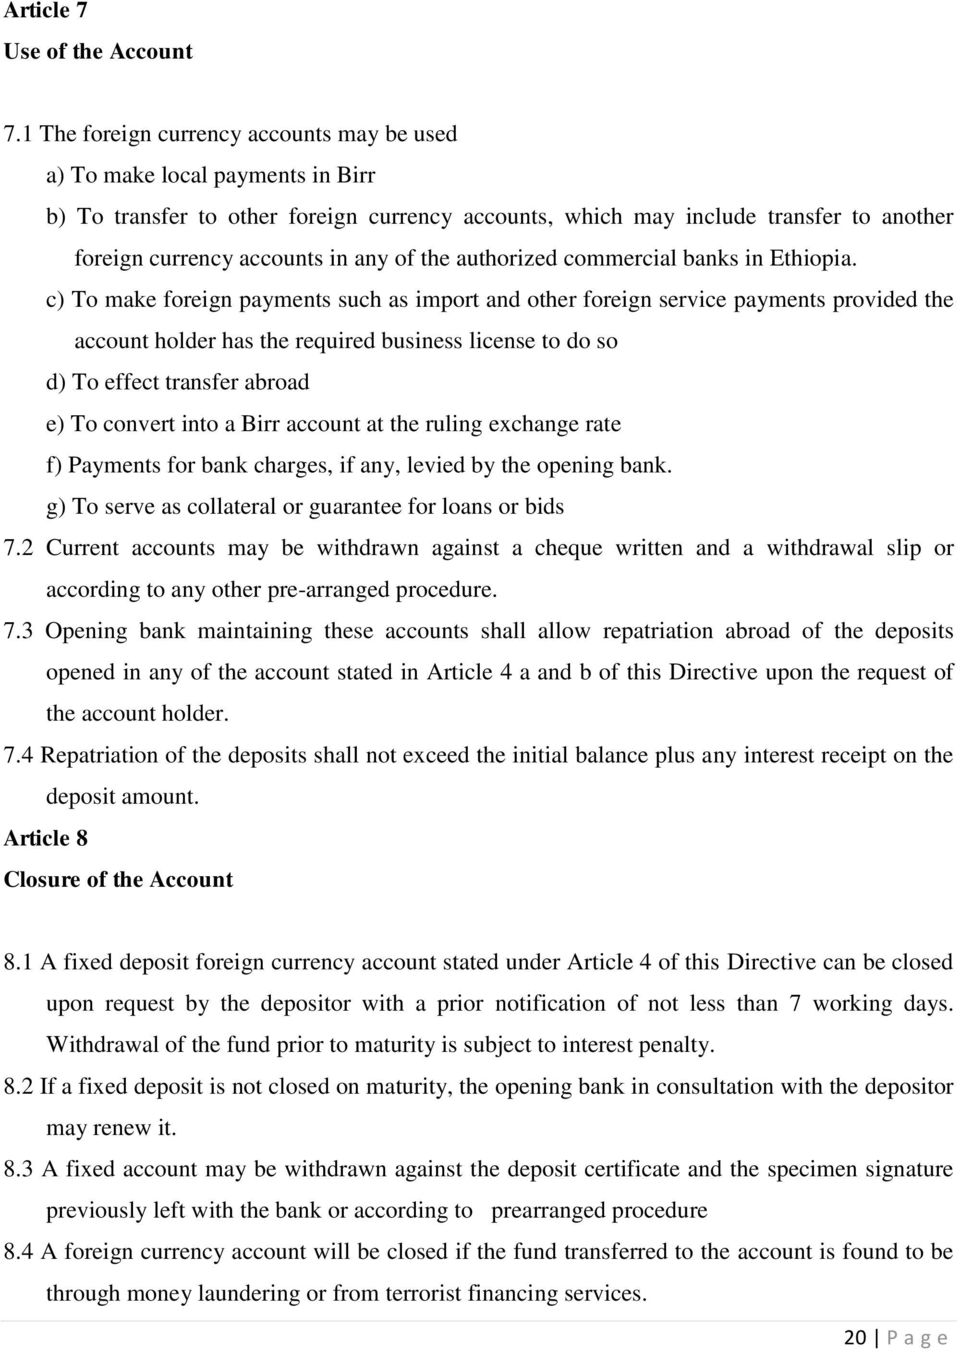 How to Open a Foreign Currency Account - PDF